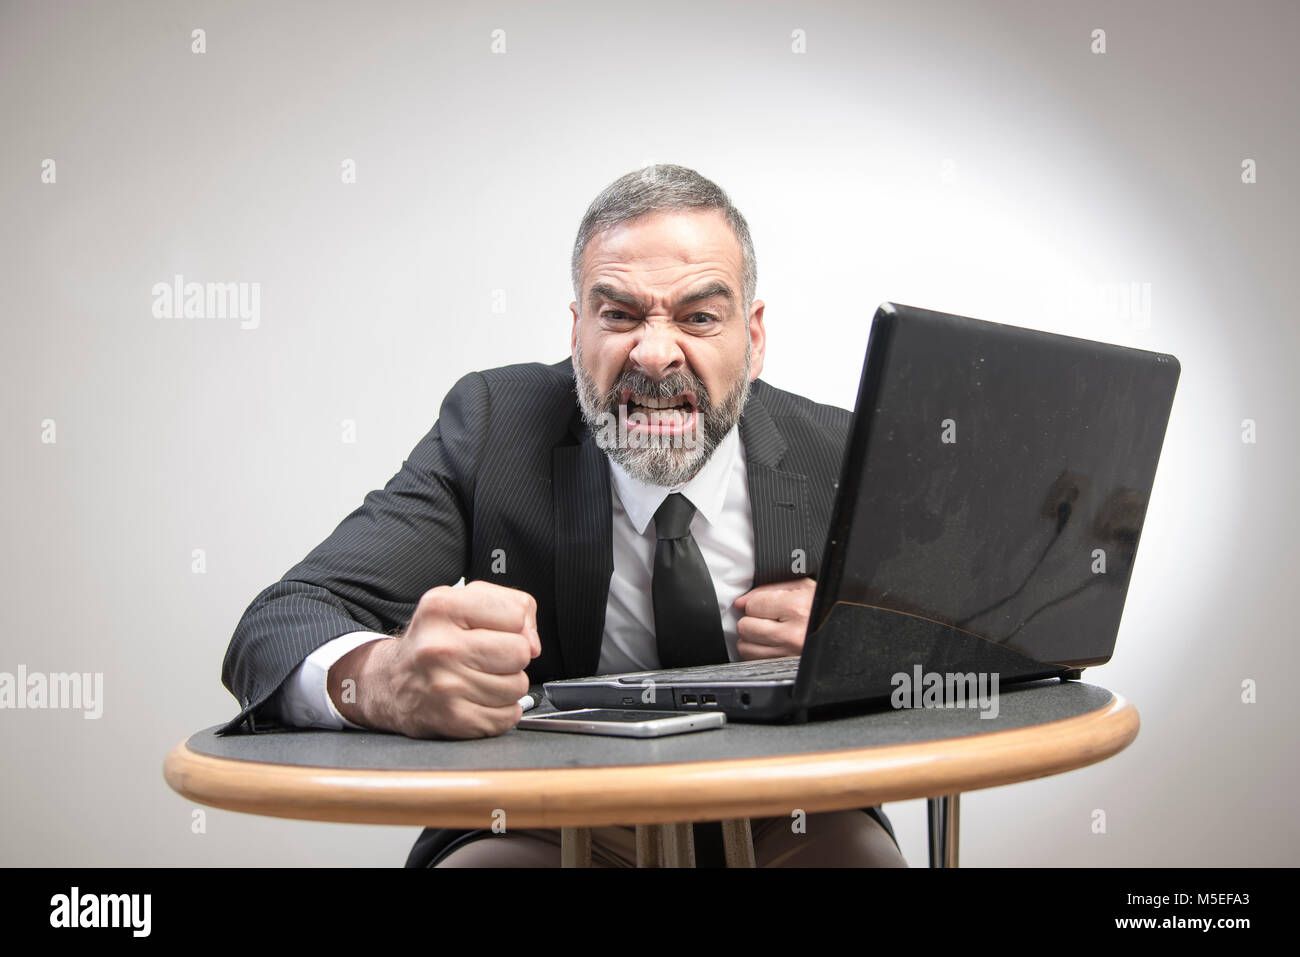 Senior business man shouting at his laptop, furious and frustrated with an email he receives - Stock Image